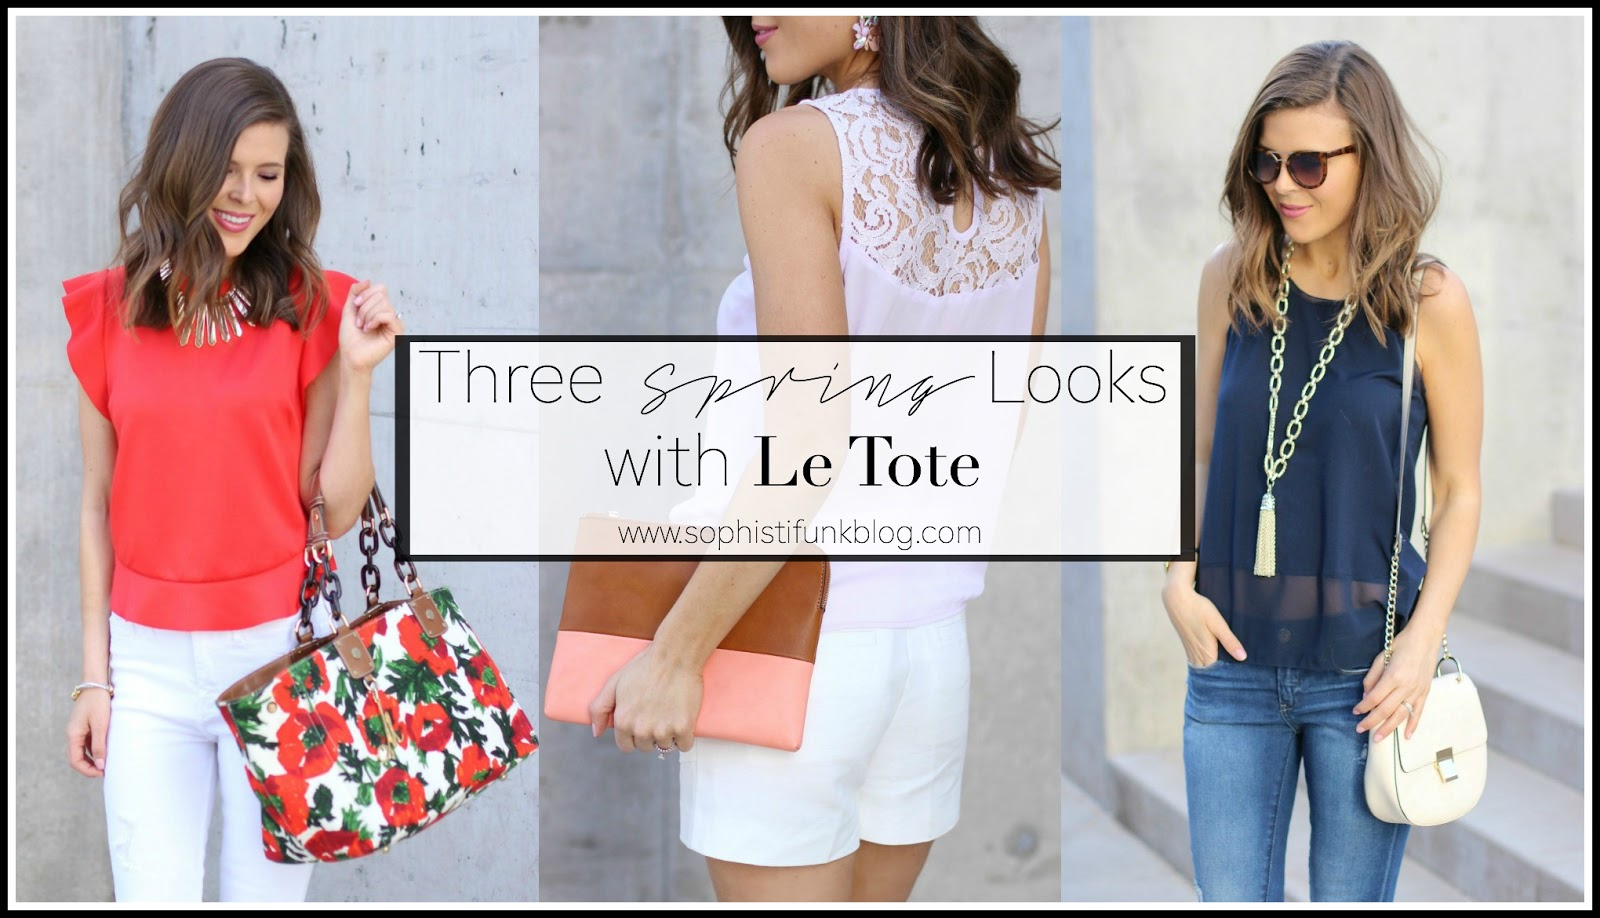 Three Spring Looks with Le Tote